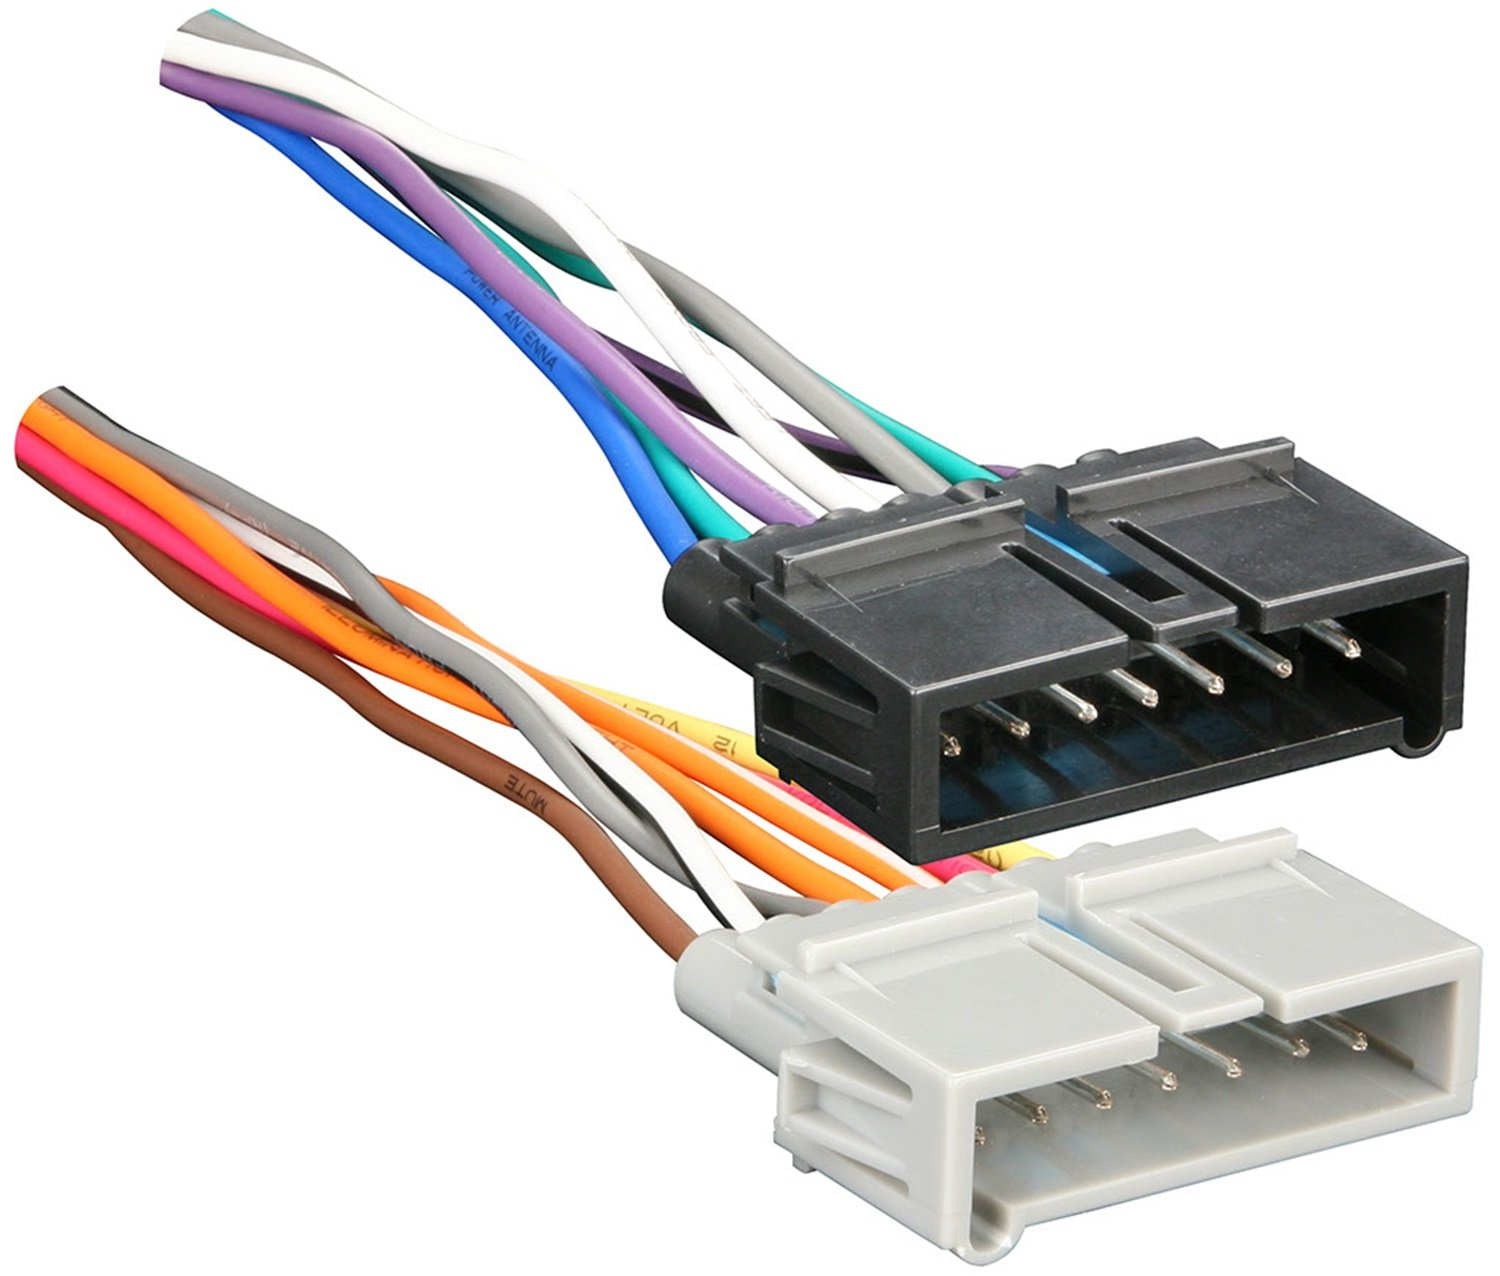 71QUZlC QWL._SL1500_ amazon com metra 70 1817 radio wiring harness for chrysler jeep  at webbmarketing.co